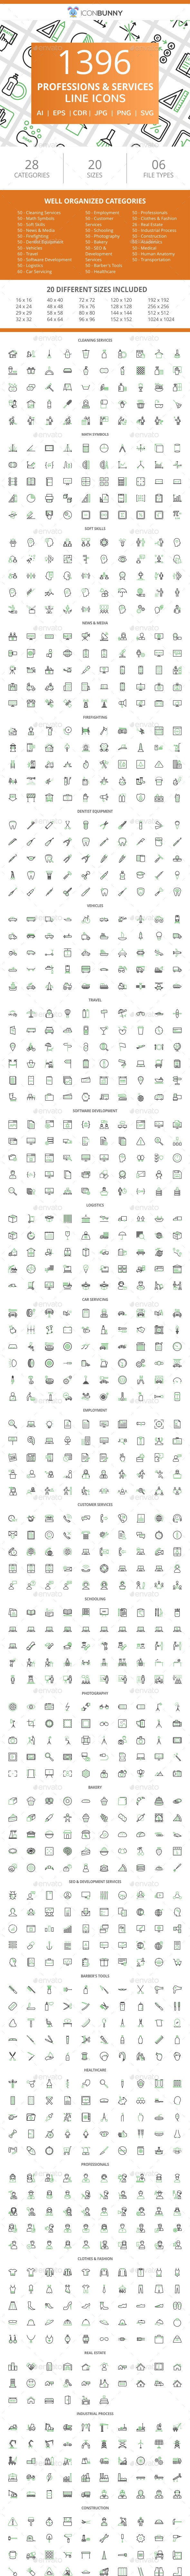 1396 Professions & Services Line Green & Black Icons - Icons